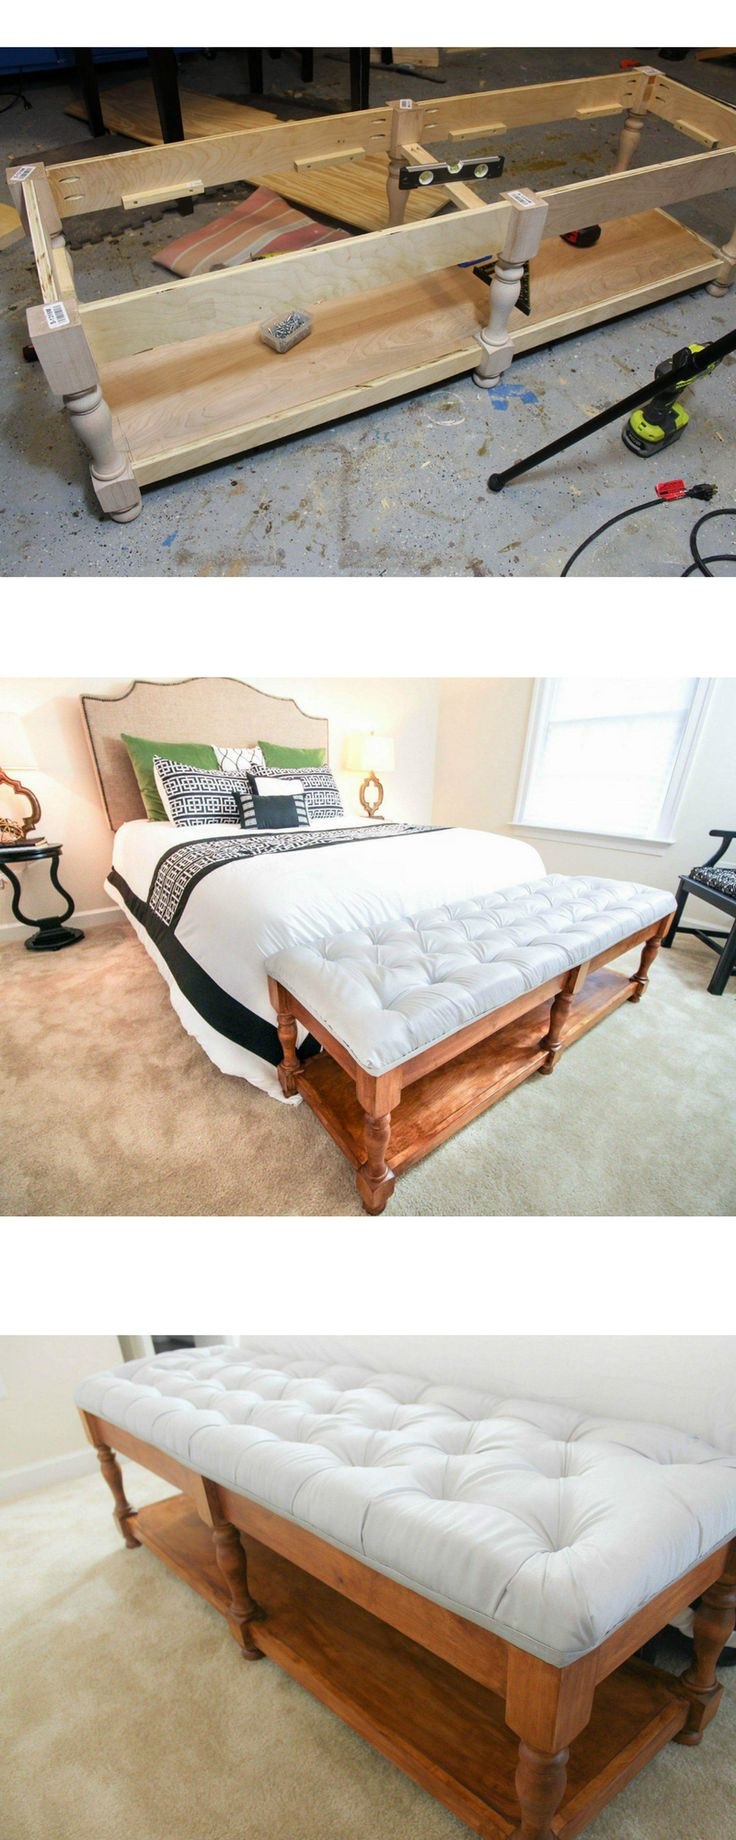 DIY how to build an elegantly tufted bench from scratch. Free Build plans. Woodworking. Interior design. build a bench #DIY @Toolboxdivas #bench #tufted bedside bench grey tufted bench for bedroom or entry #woodworkingbench